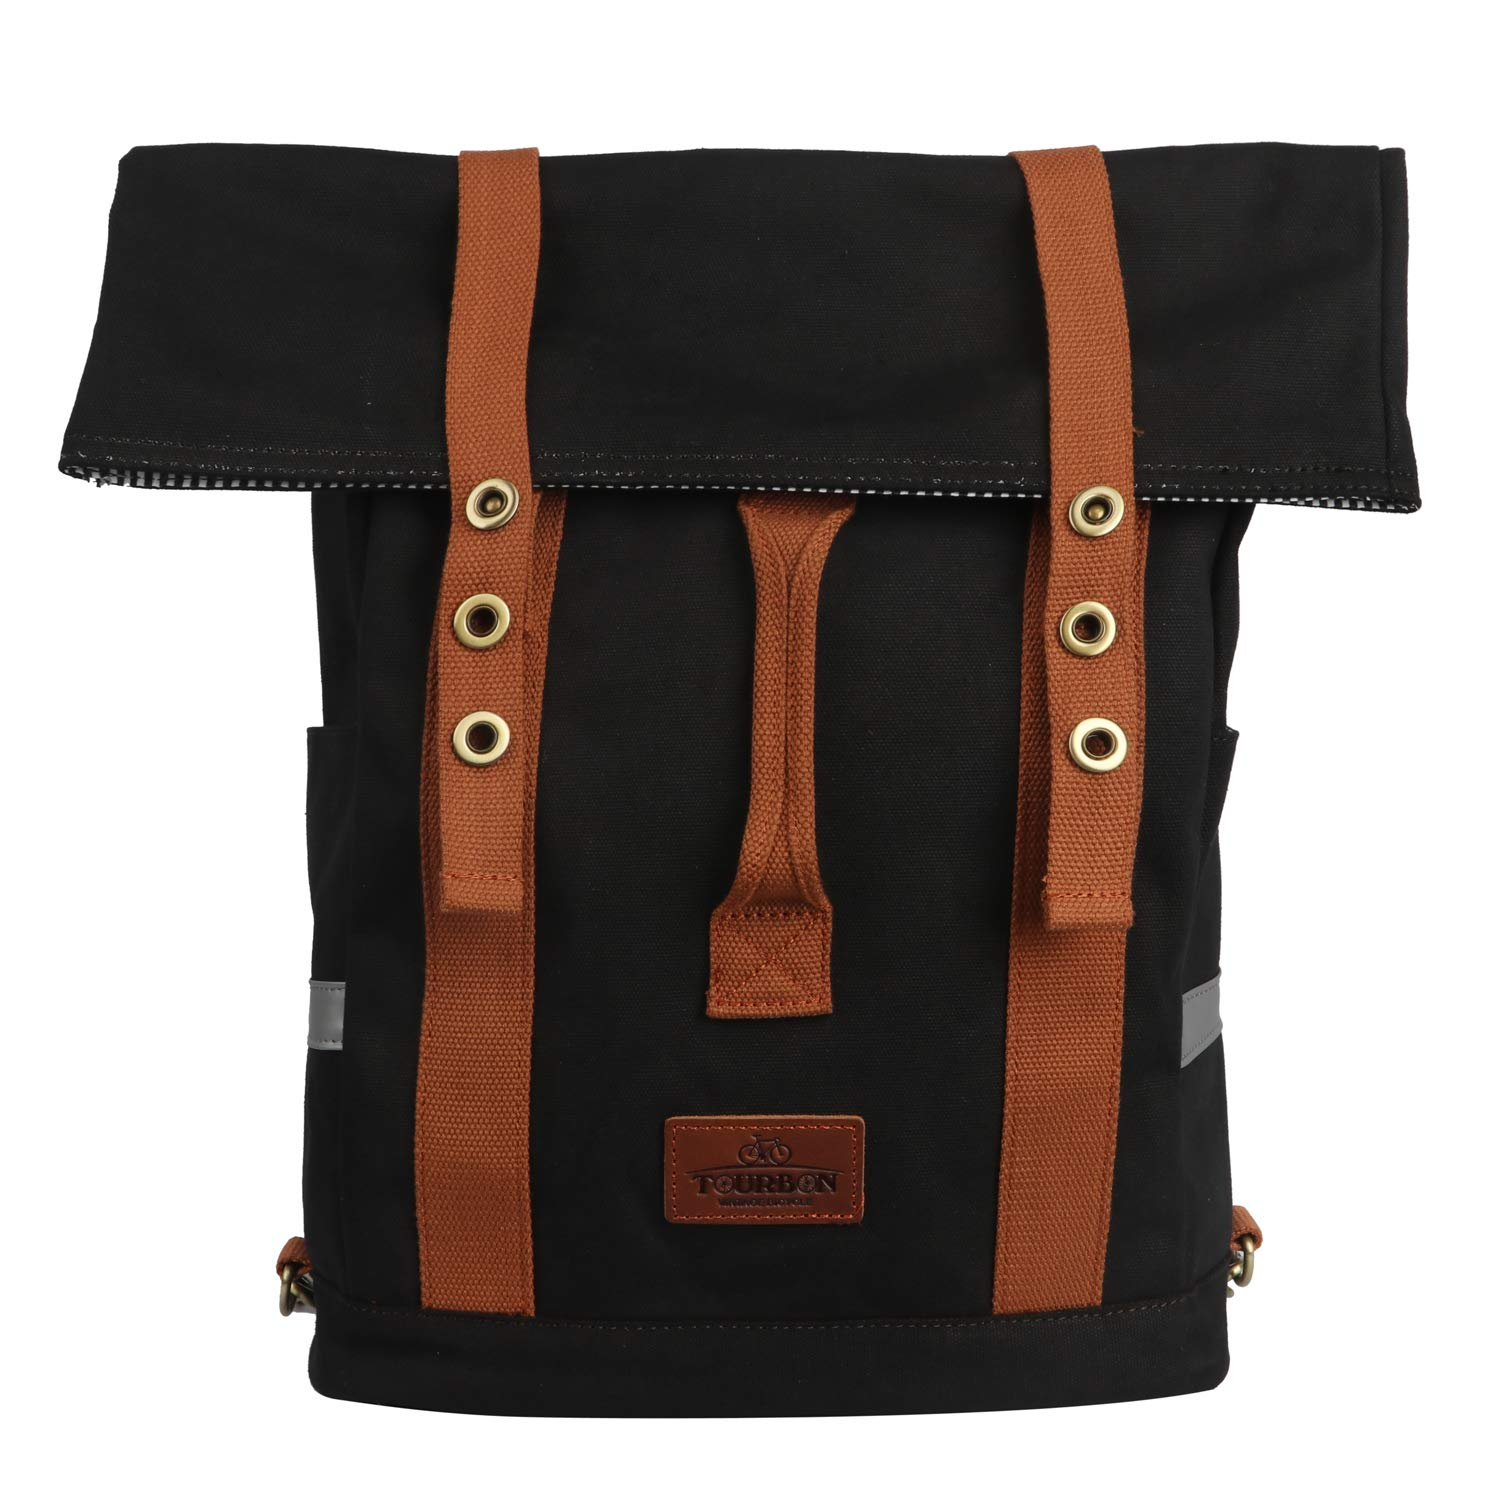 TOURBON Canvas Convertible Backpack Panniers Bicycle Cycling Bike Rear Rack Bag